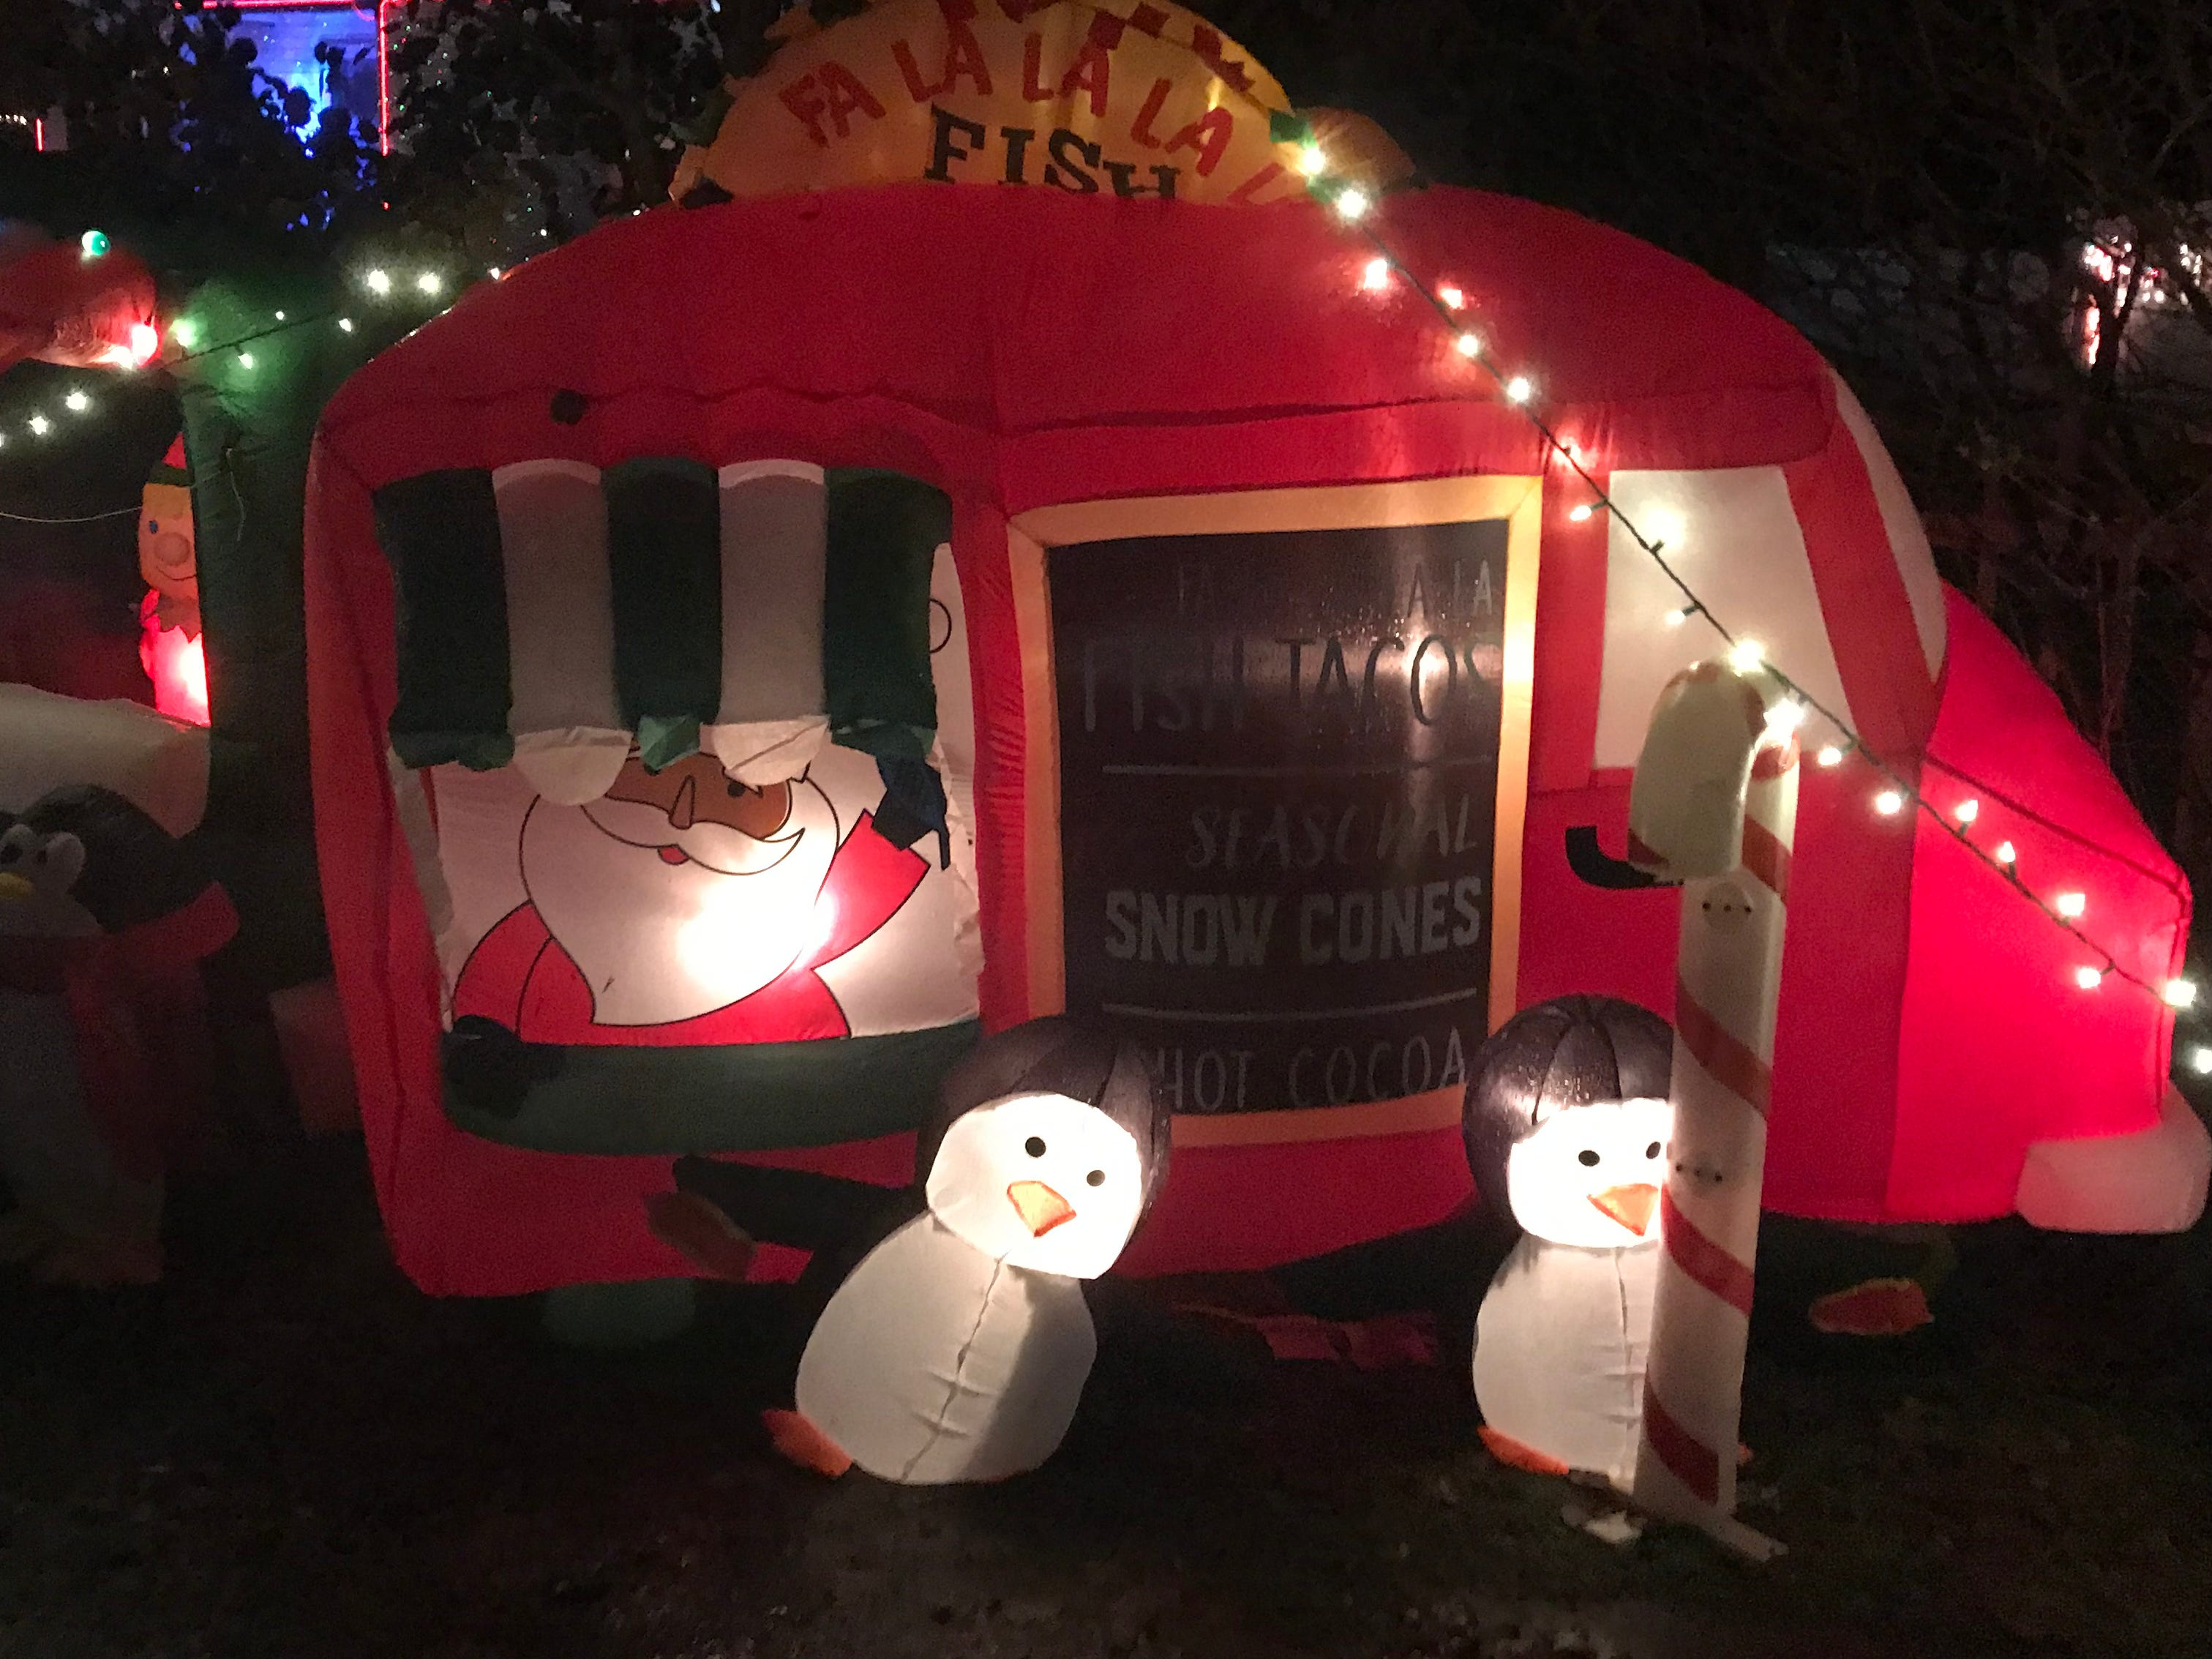 The Phillips family has been running the 'Phillips Festival of Lights' outside of their home from 1-7 Penny Street in Binghamton. The display is open for visitors to drive through every evening.